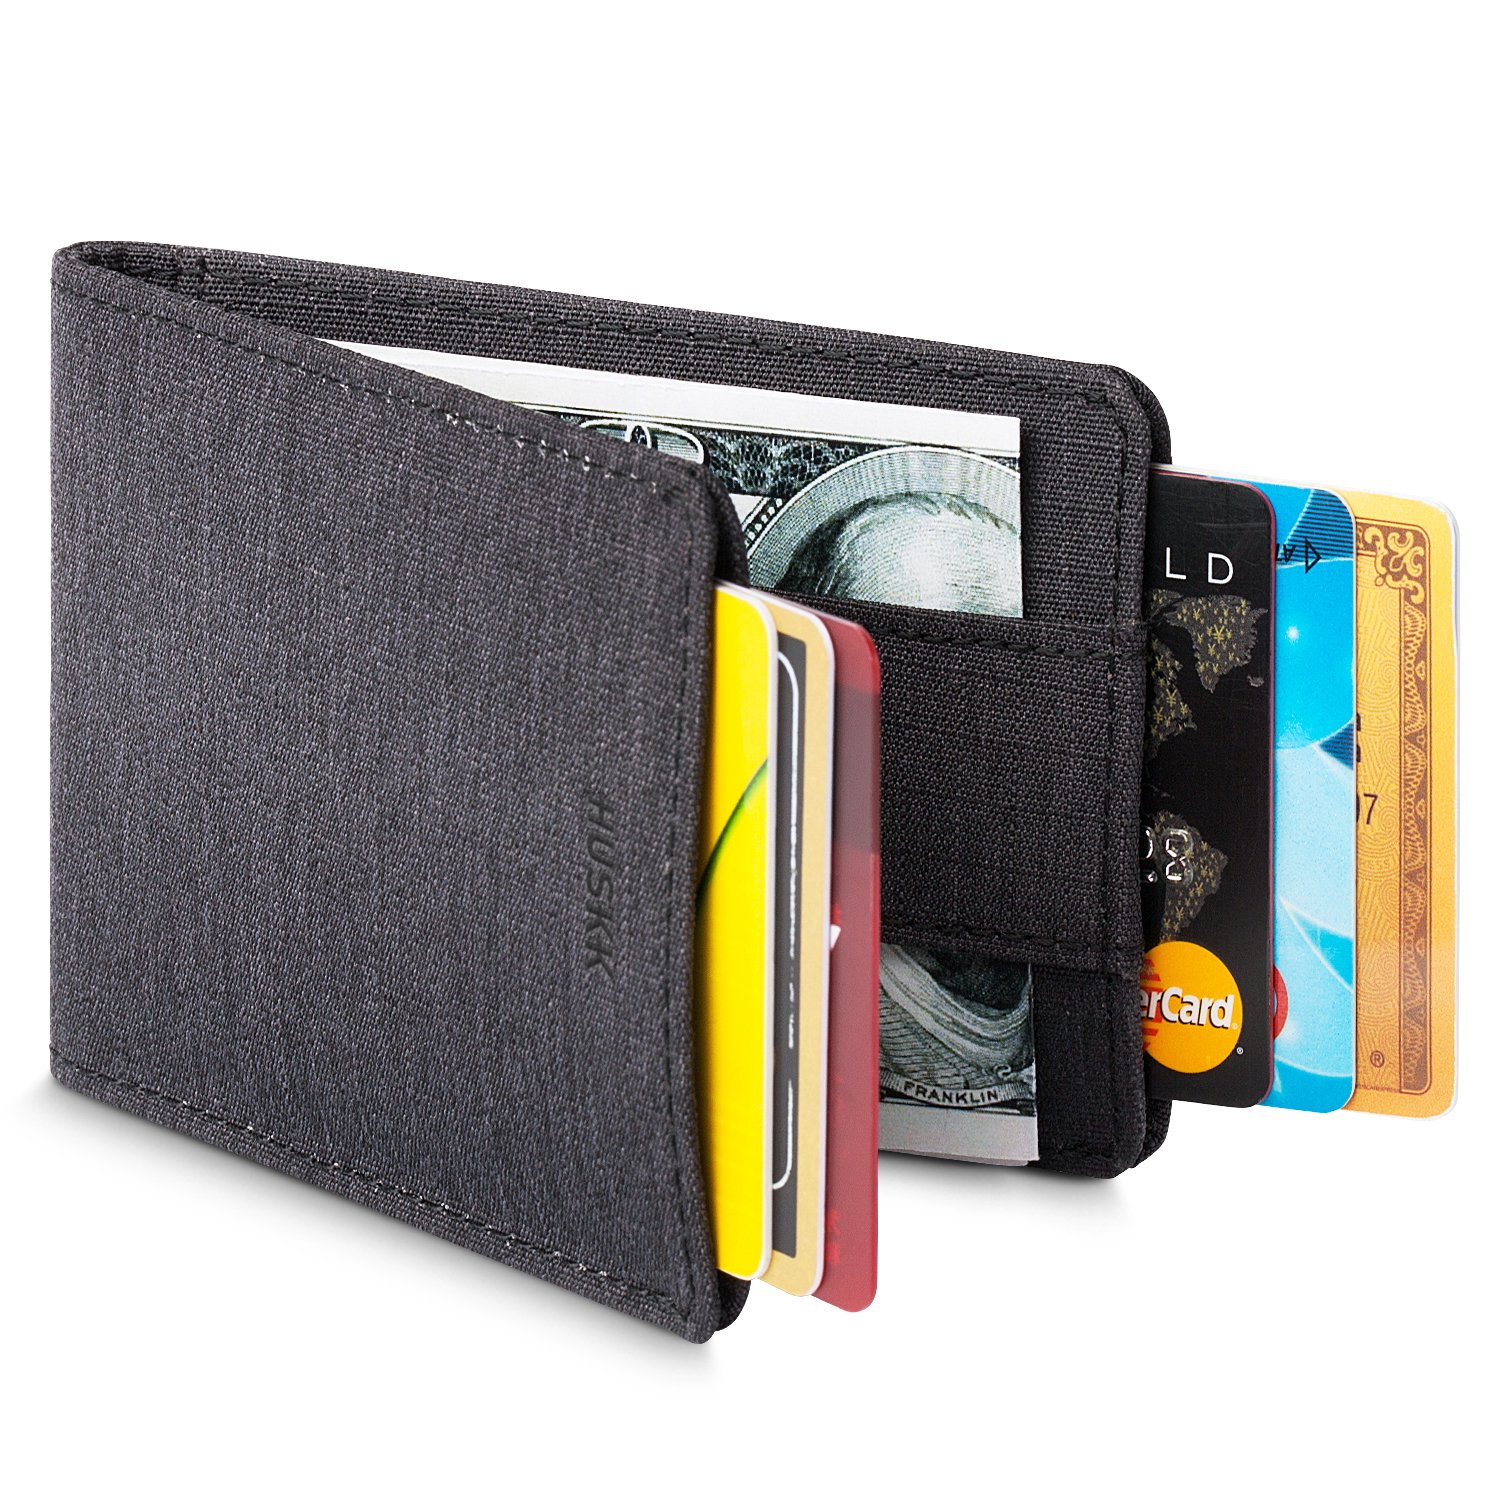 Men Wallet - RFID Minimalist Slim Front Pocket Card Travel Holder Clip CSBW HUSKK CSBW2-SB